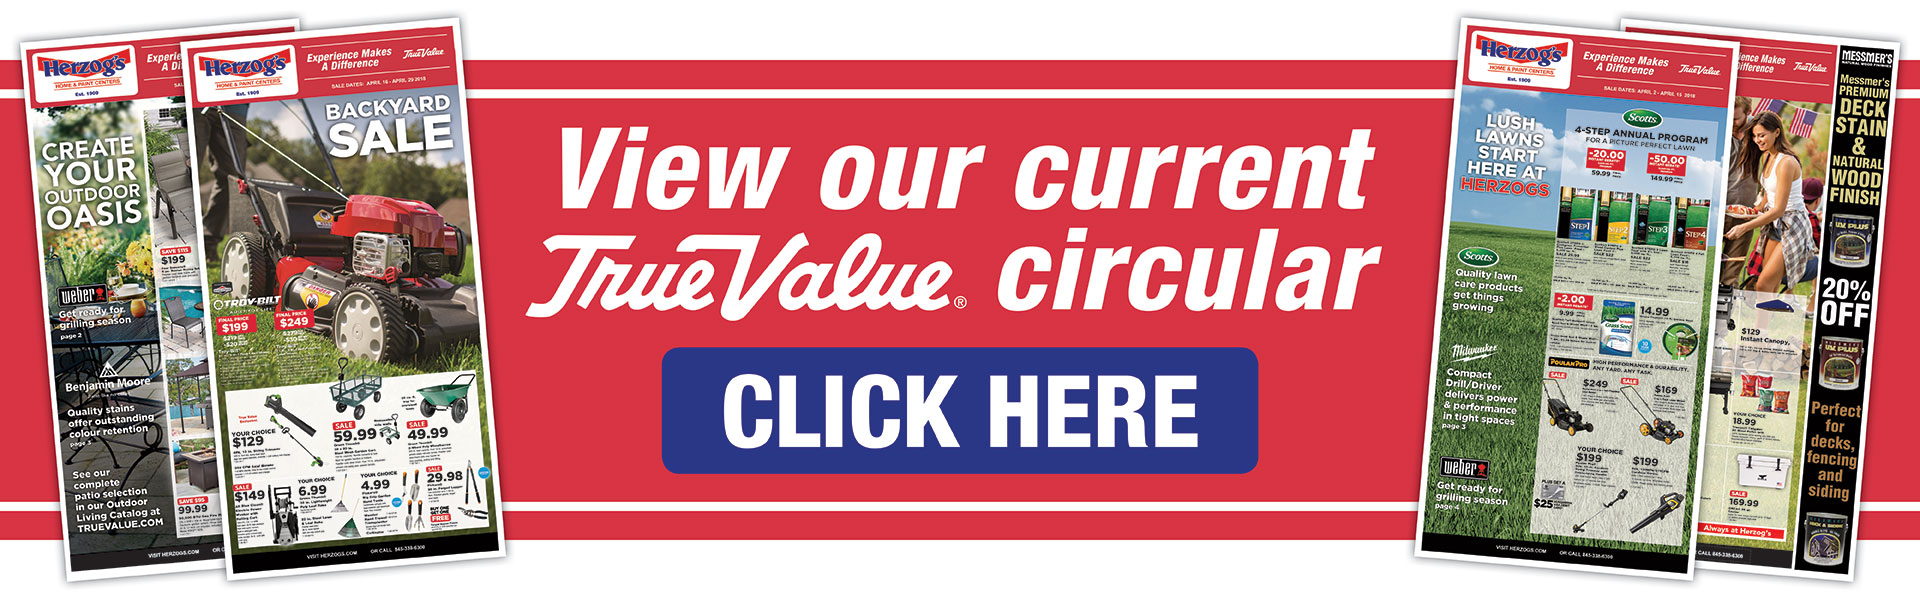 View our current True Value circular. Click here.